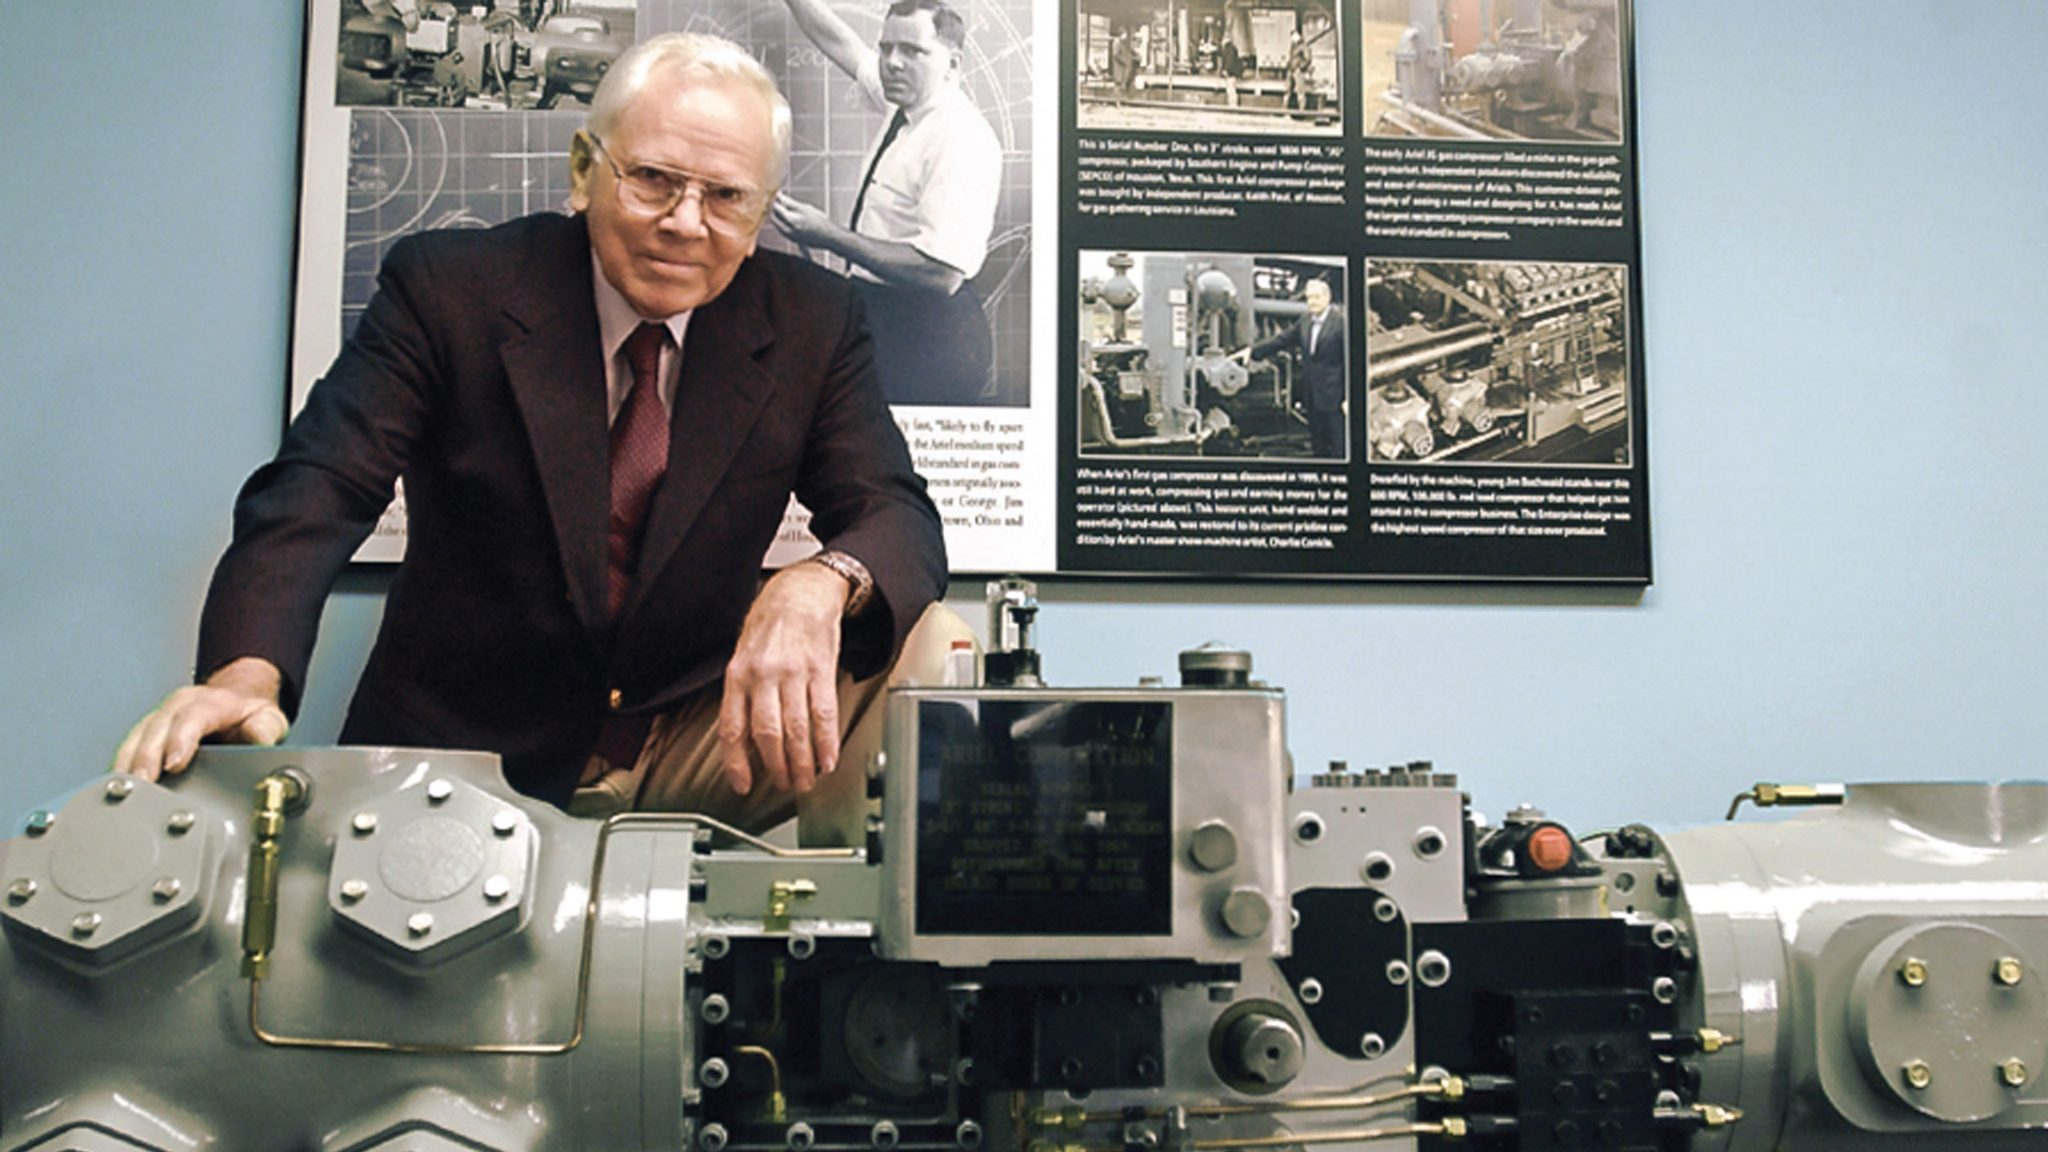 Founder of Ariel, Jim Buchwald stands behind the first Ariel Compressor